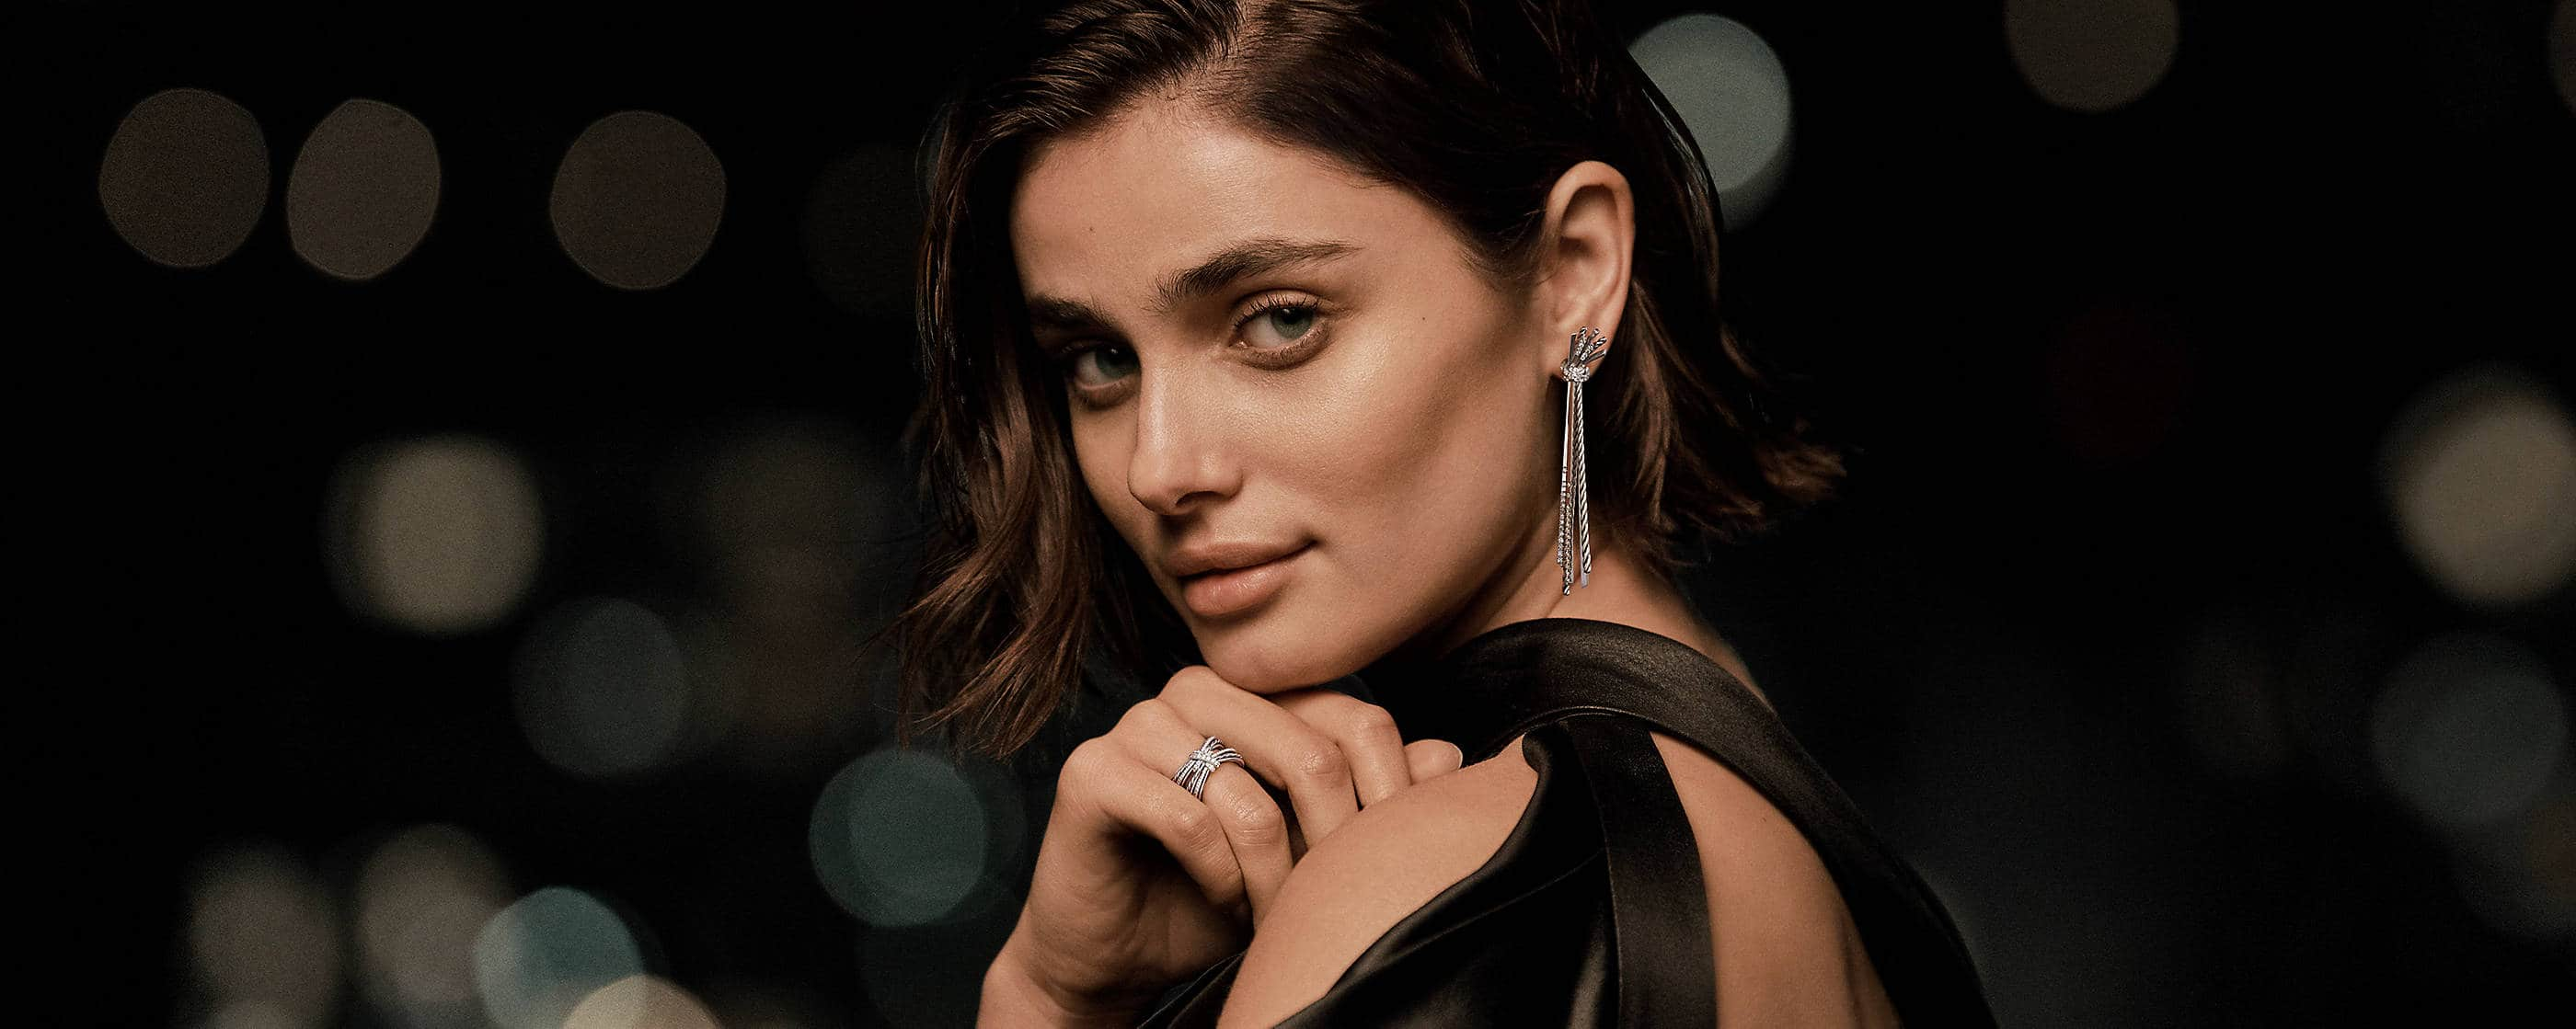 An image of model Taylor Hill wearing David Yurman Angelika drop earrings and a ring. The jewelry is crafted from sterling silver with pavé diamonds.